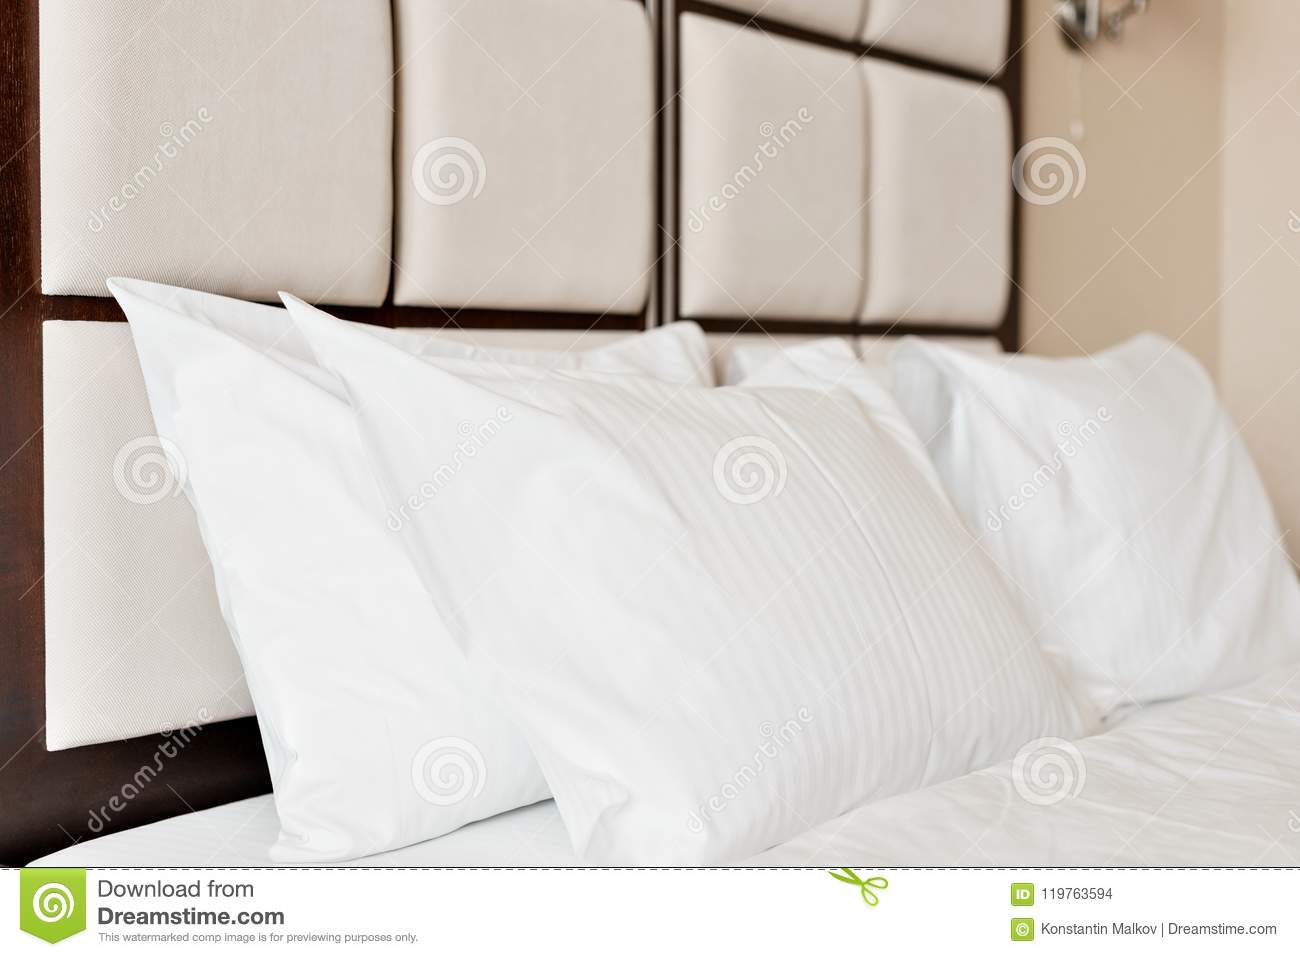 Pillow With Beads Inside.Modern Double Bedroom Comfortable Soft White Pillows On A